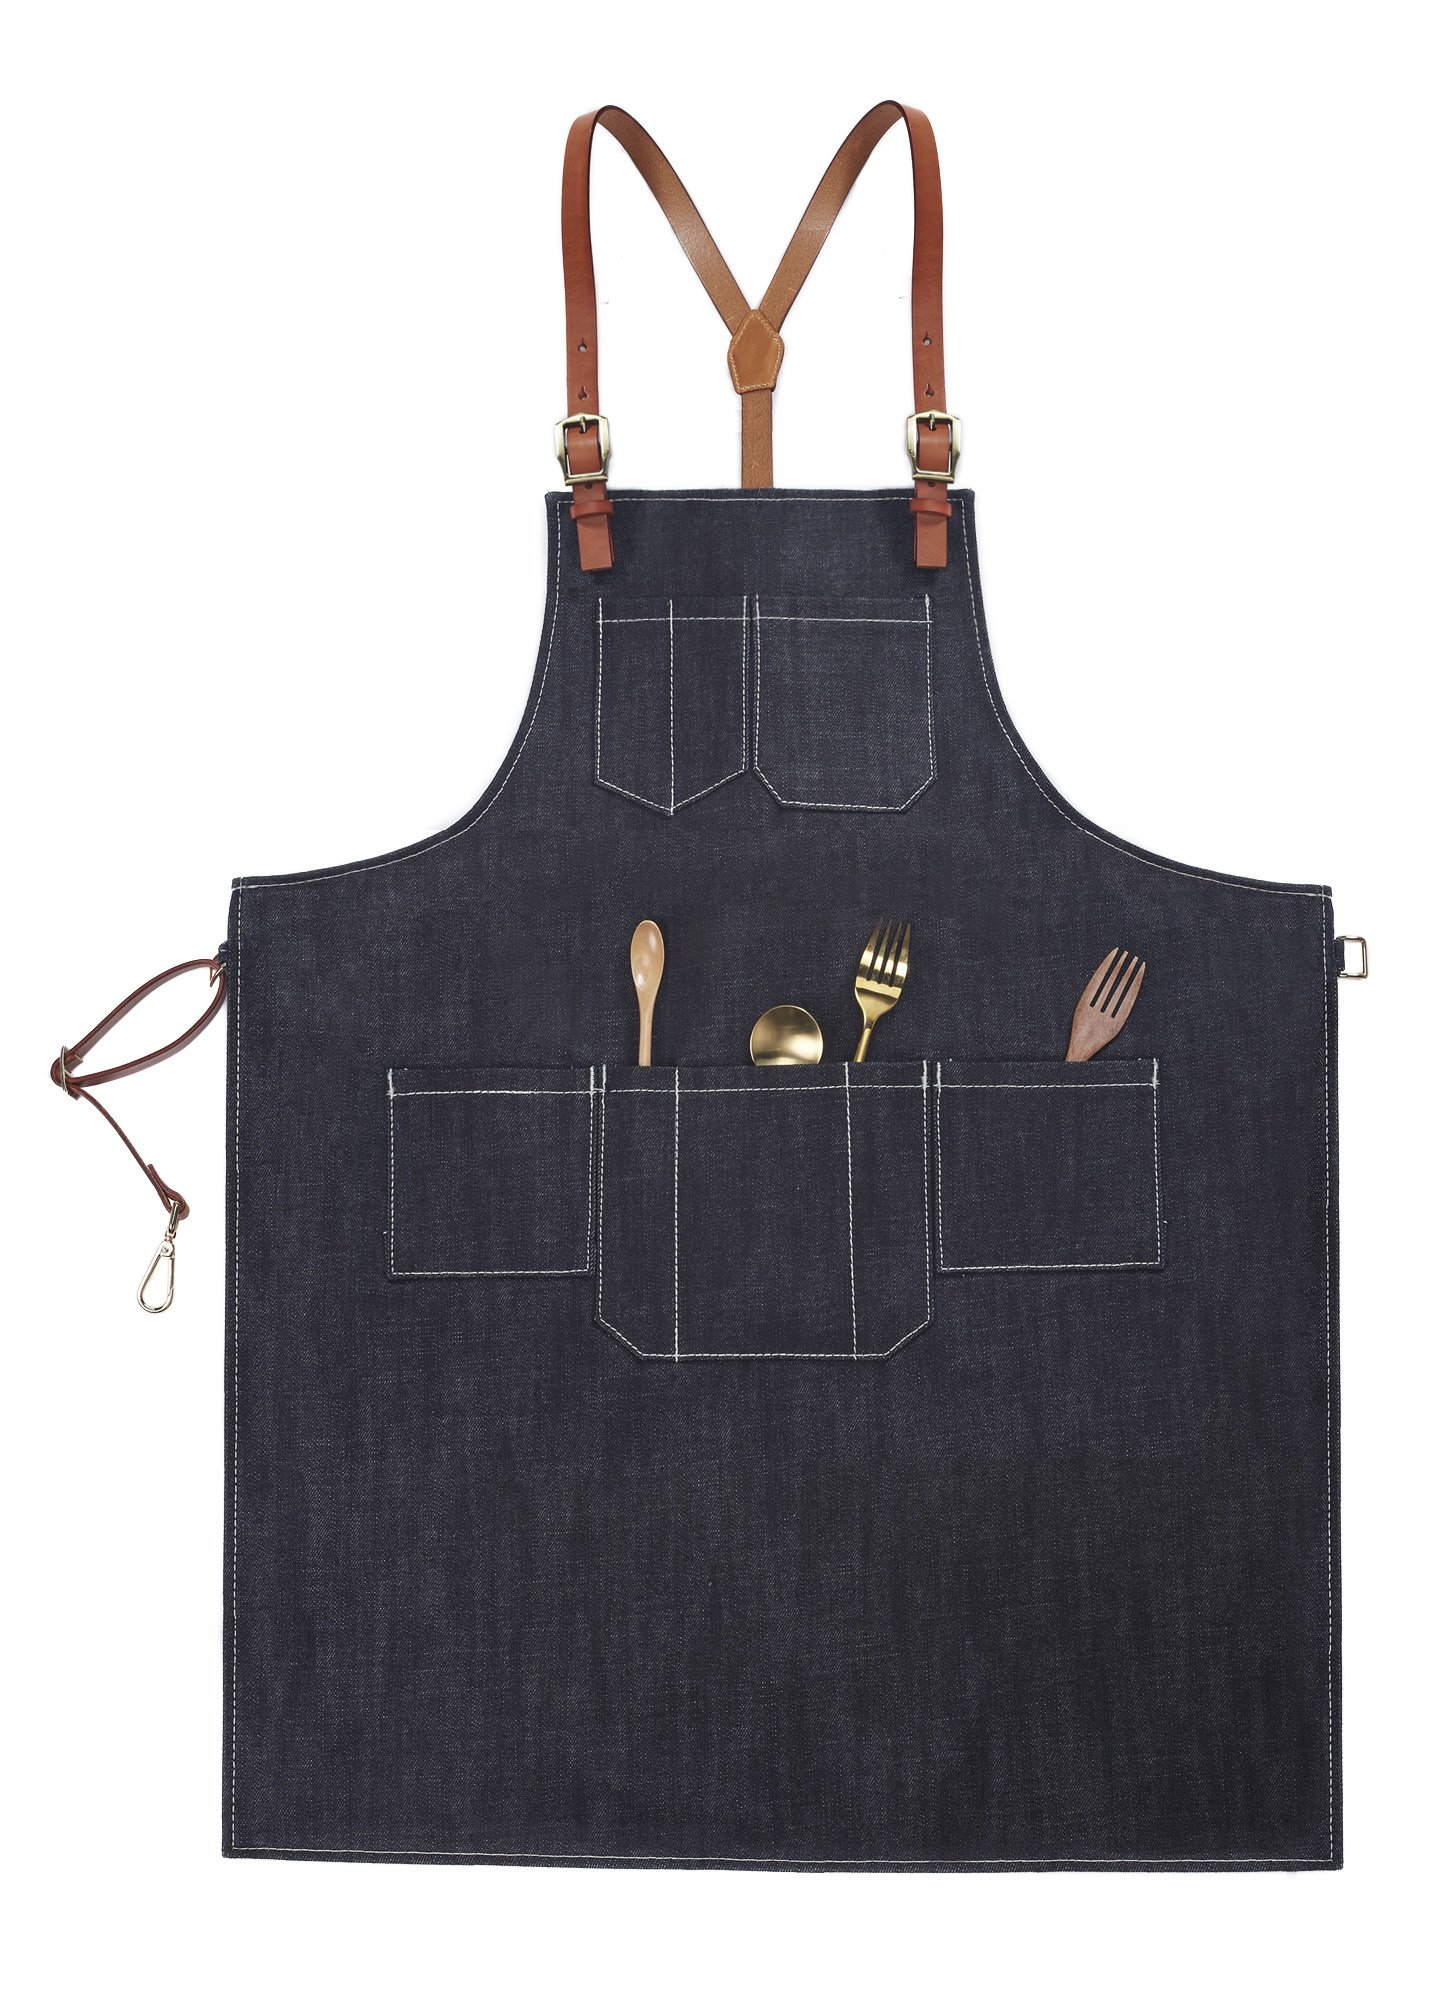 Home-organizer Tech Multi-Use Detachable Tool Apron Heavy Duty Denim Jean Work Apron Salon Barber Hairdressers Apron BBQ Gril Housewife Apron with Pockets, Adjustable for Men & Women (L)